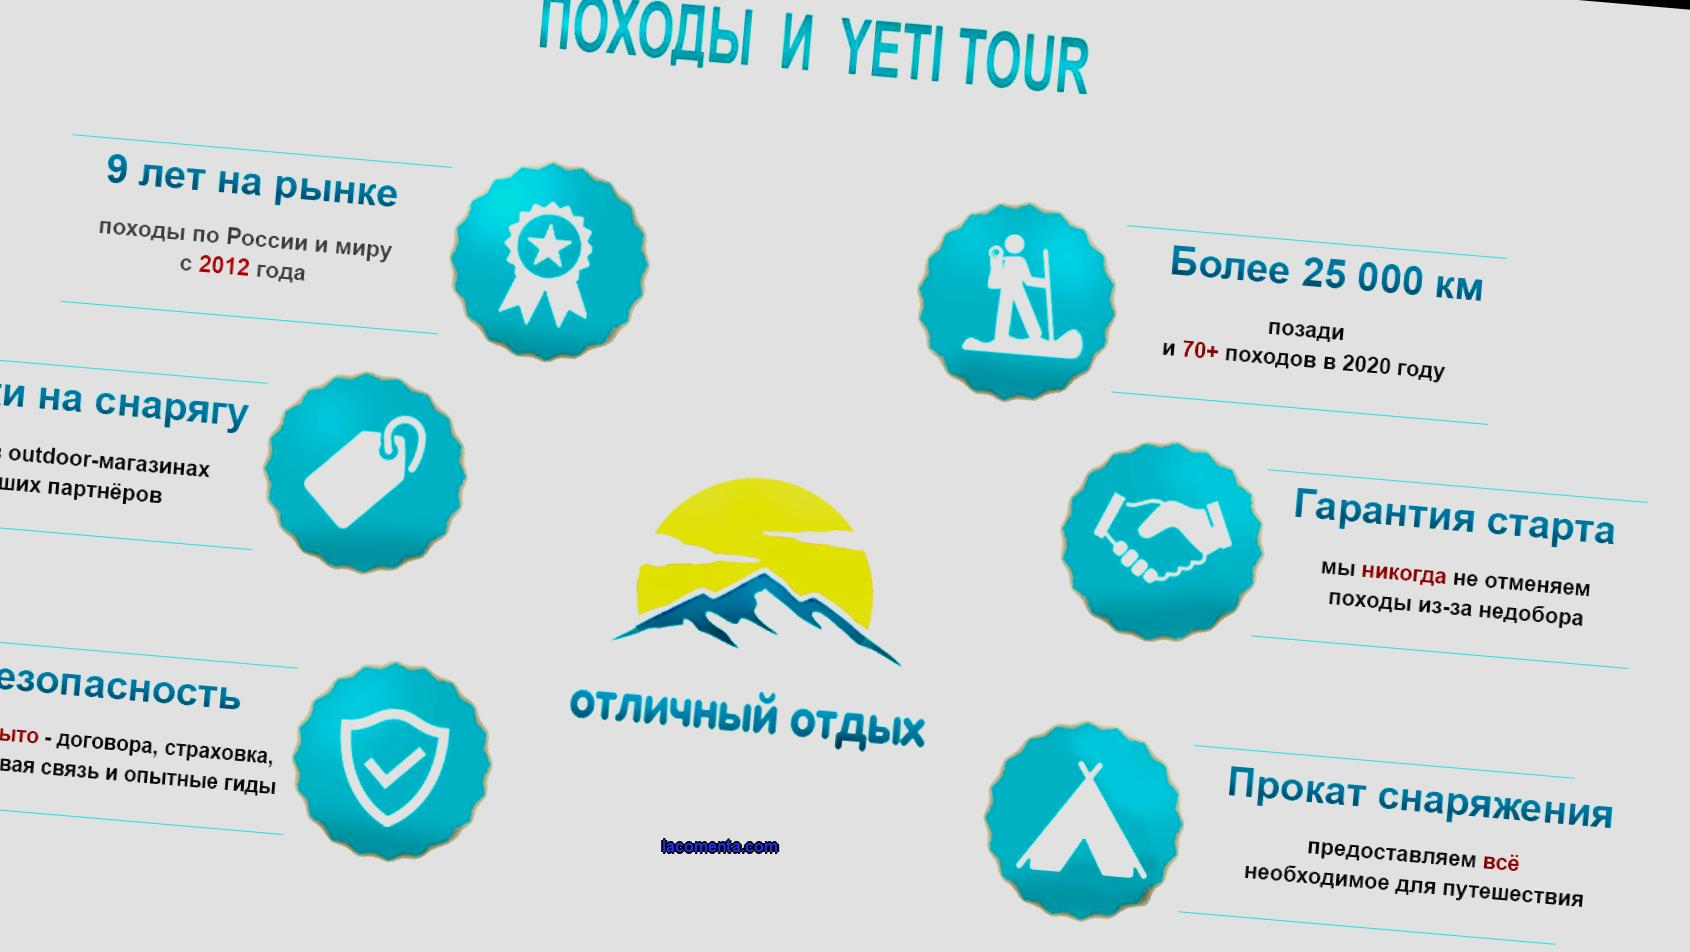 Polar Ural: hike climbing to g